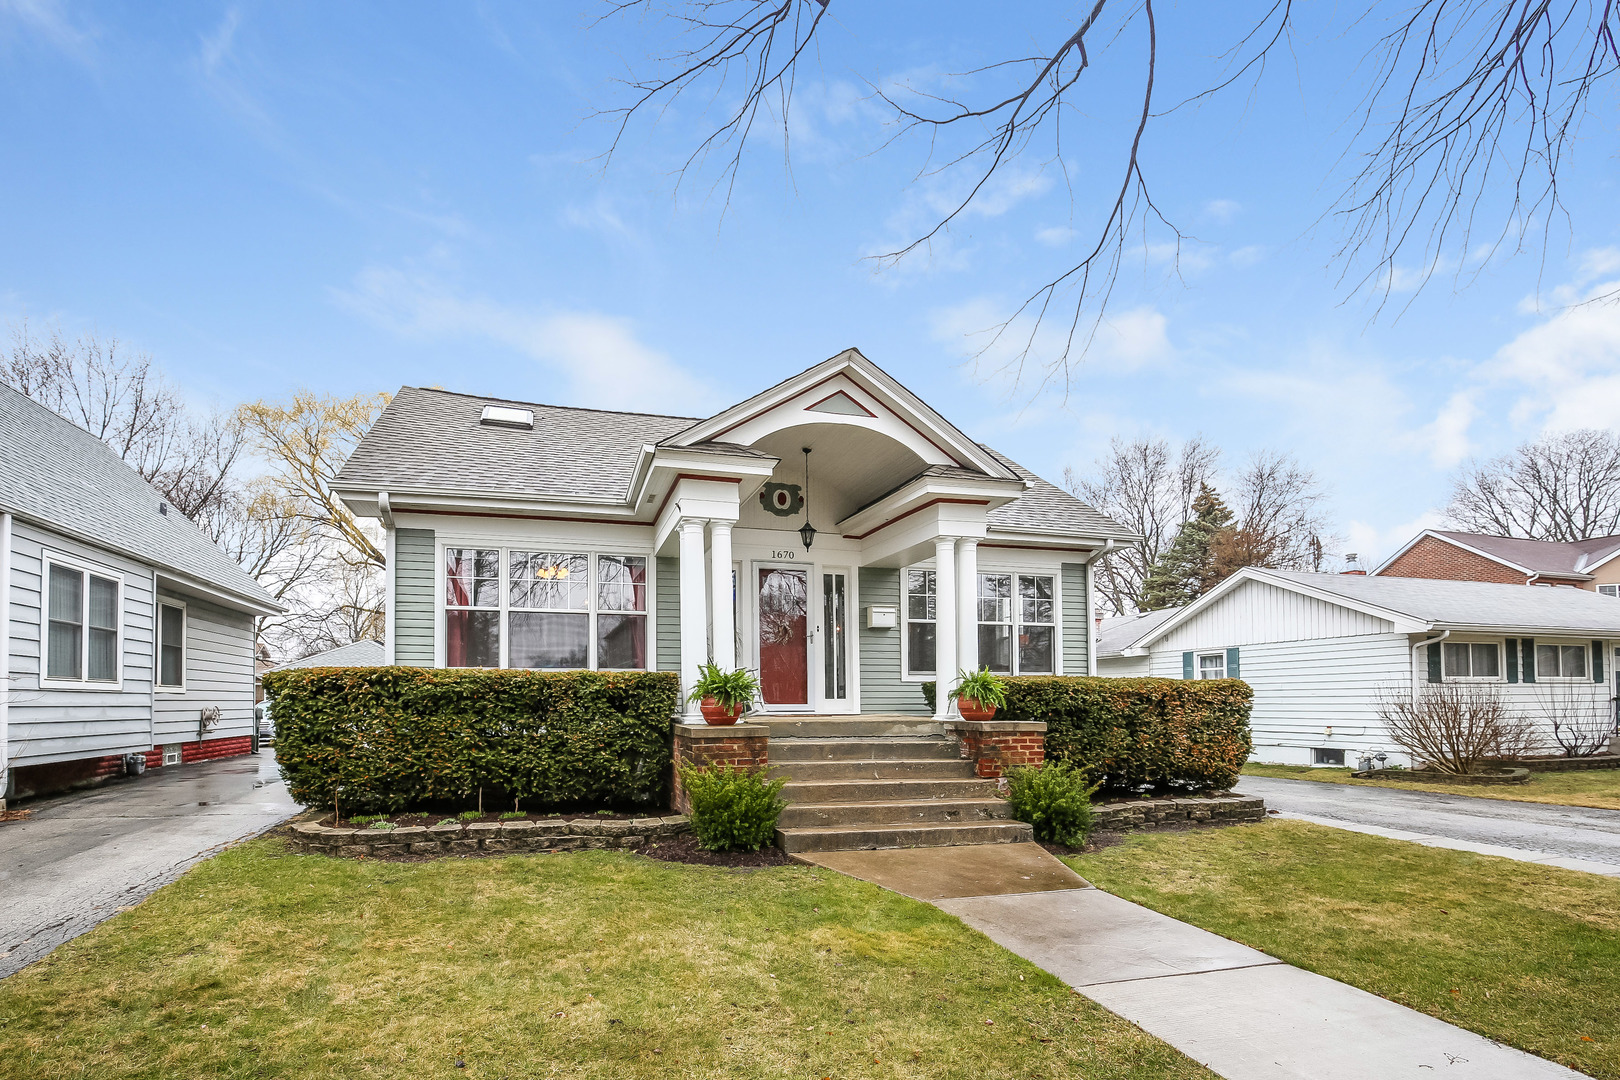 muslim singles in des plaines Search 25 apartments for rent with 3 bedroom in des plaines, illinois find des plaines apartments, condos, townhomes, single family homes, and much more on trulia.